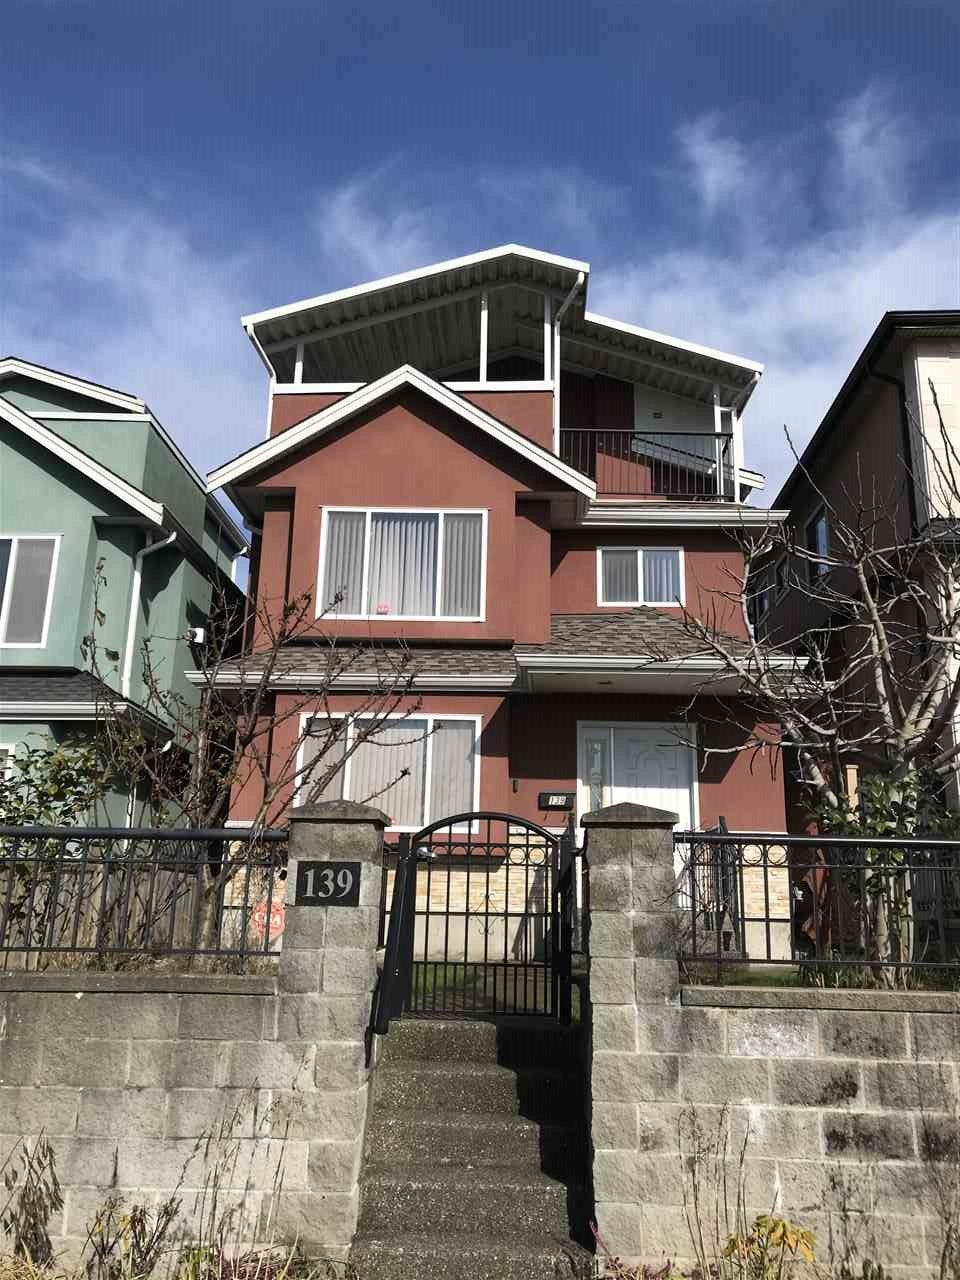 139 E 62 AVENUE - South Vancouver House/Single Family for sale, 6 Bedrooms (R2442010)